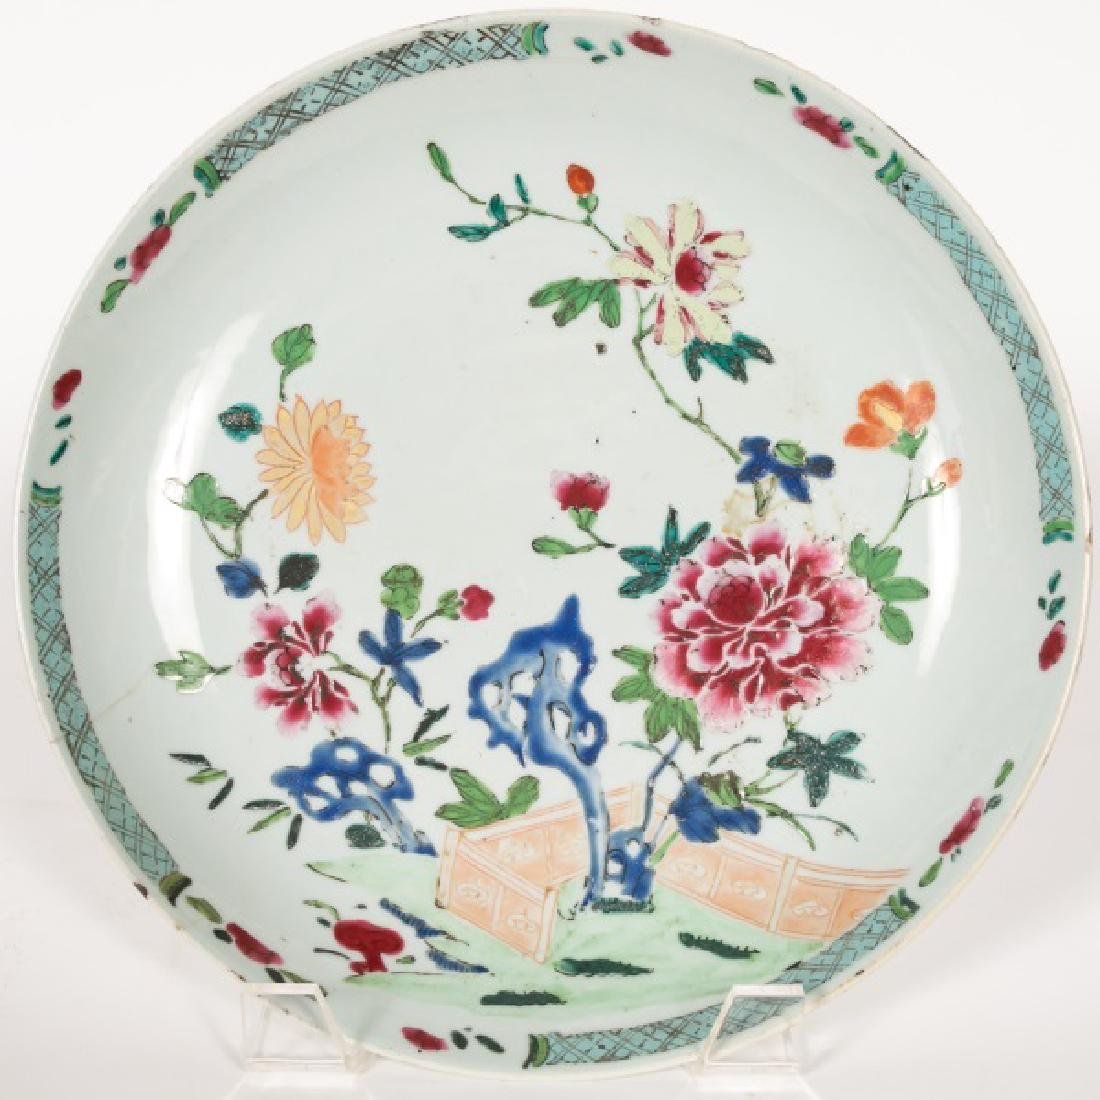 19th C. Chinese Charger with Flower Garden